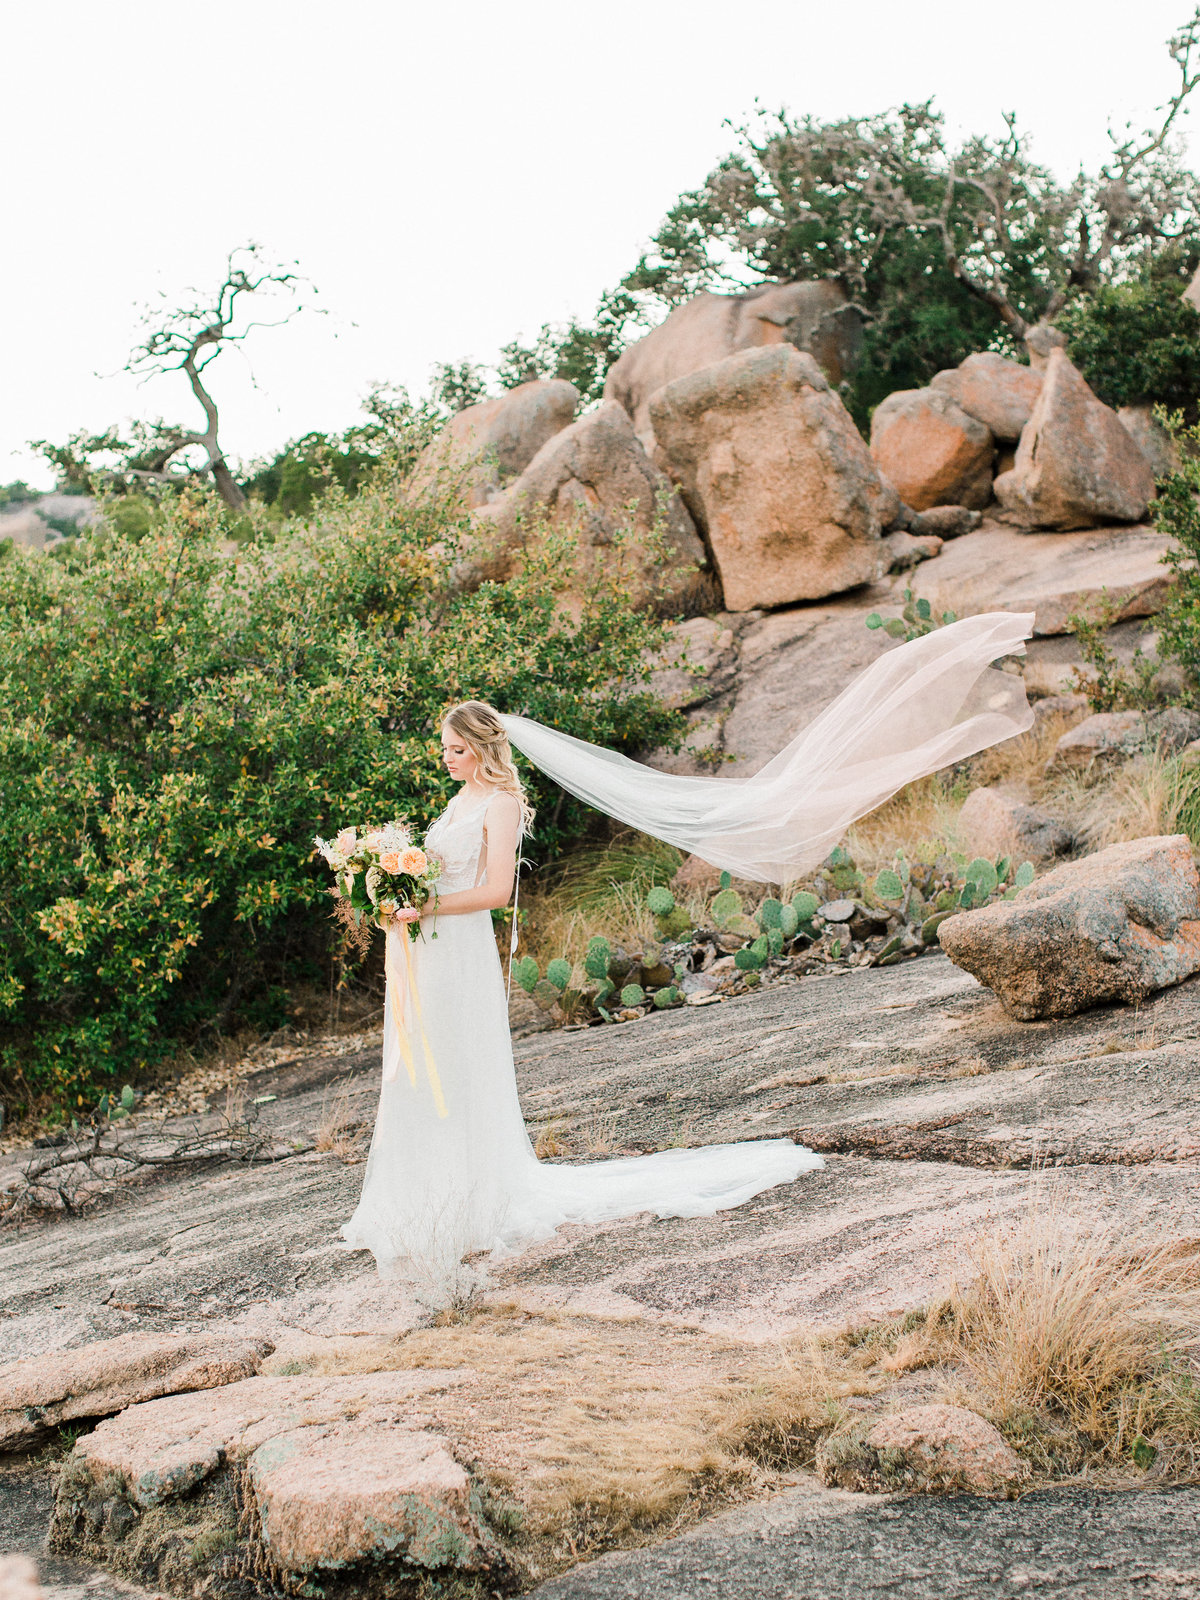 EnchantedRock-108